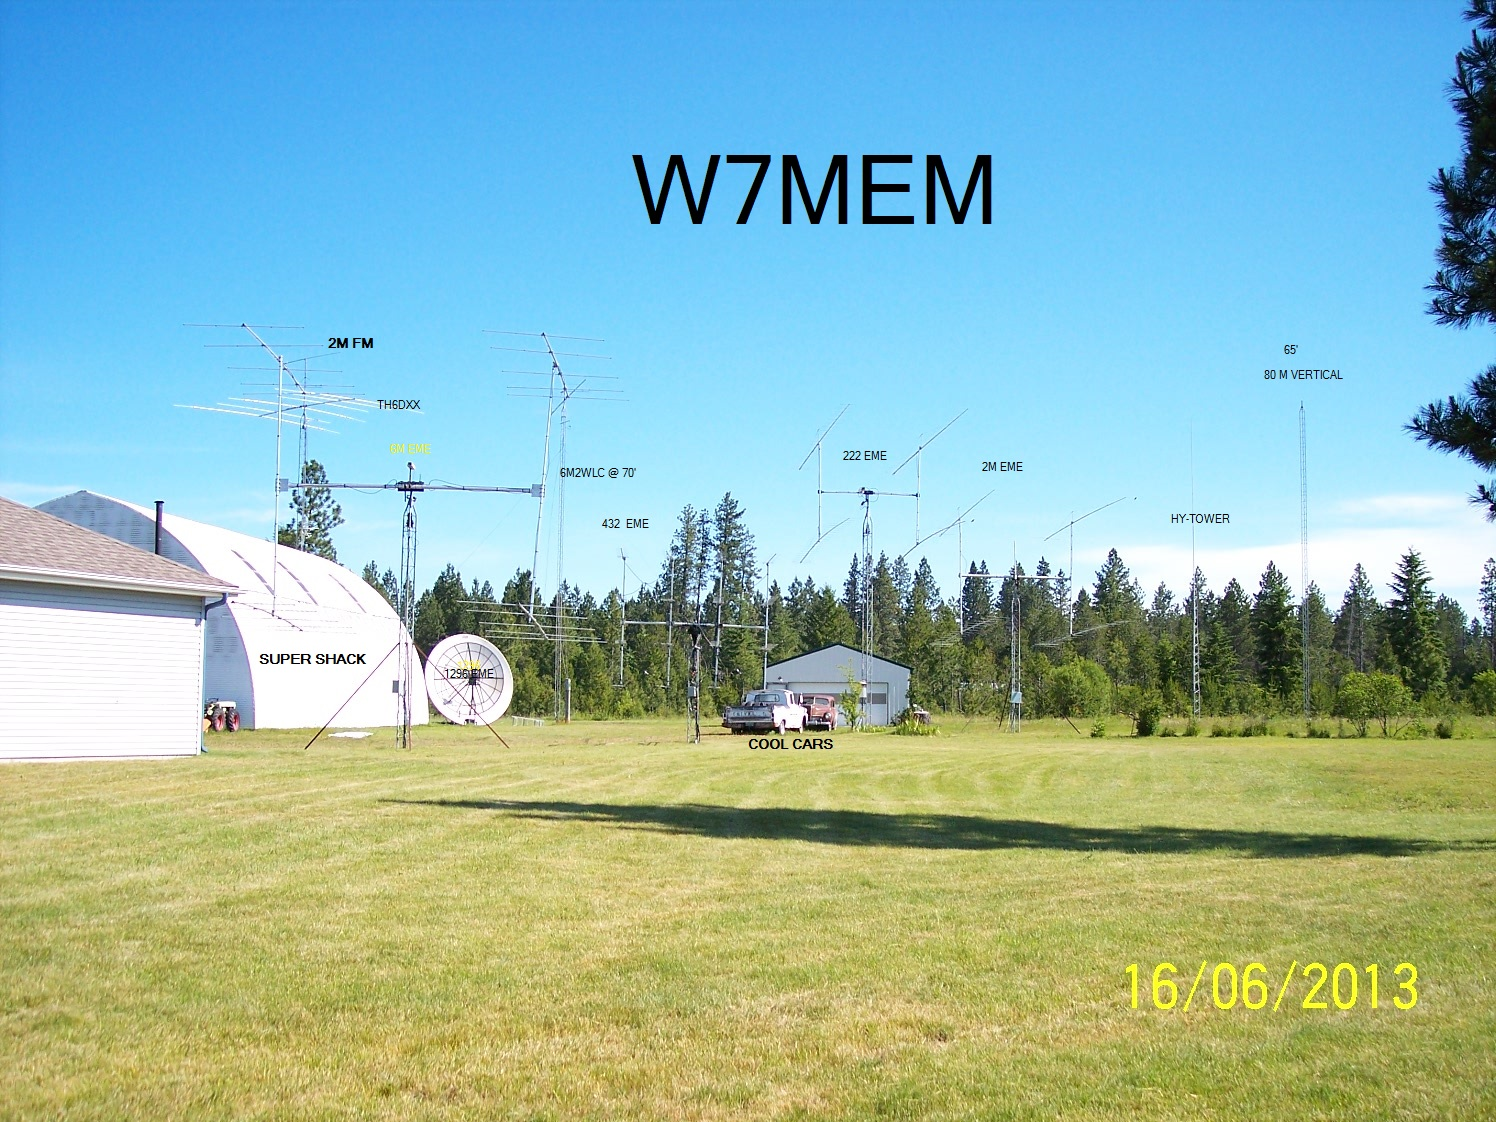 QSL image for W7MEM